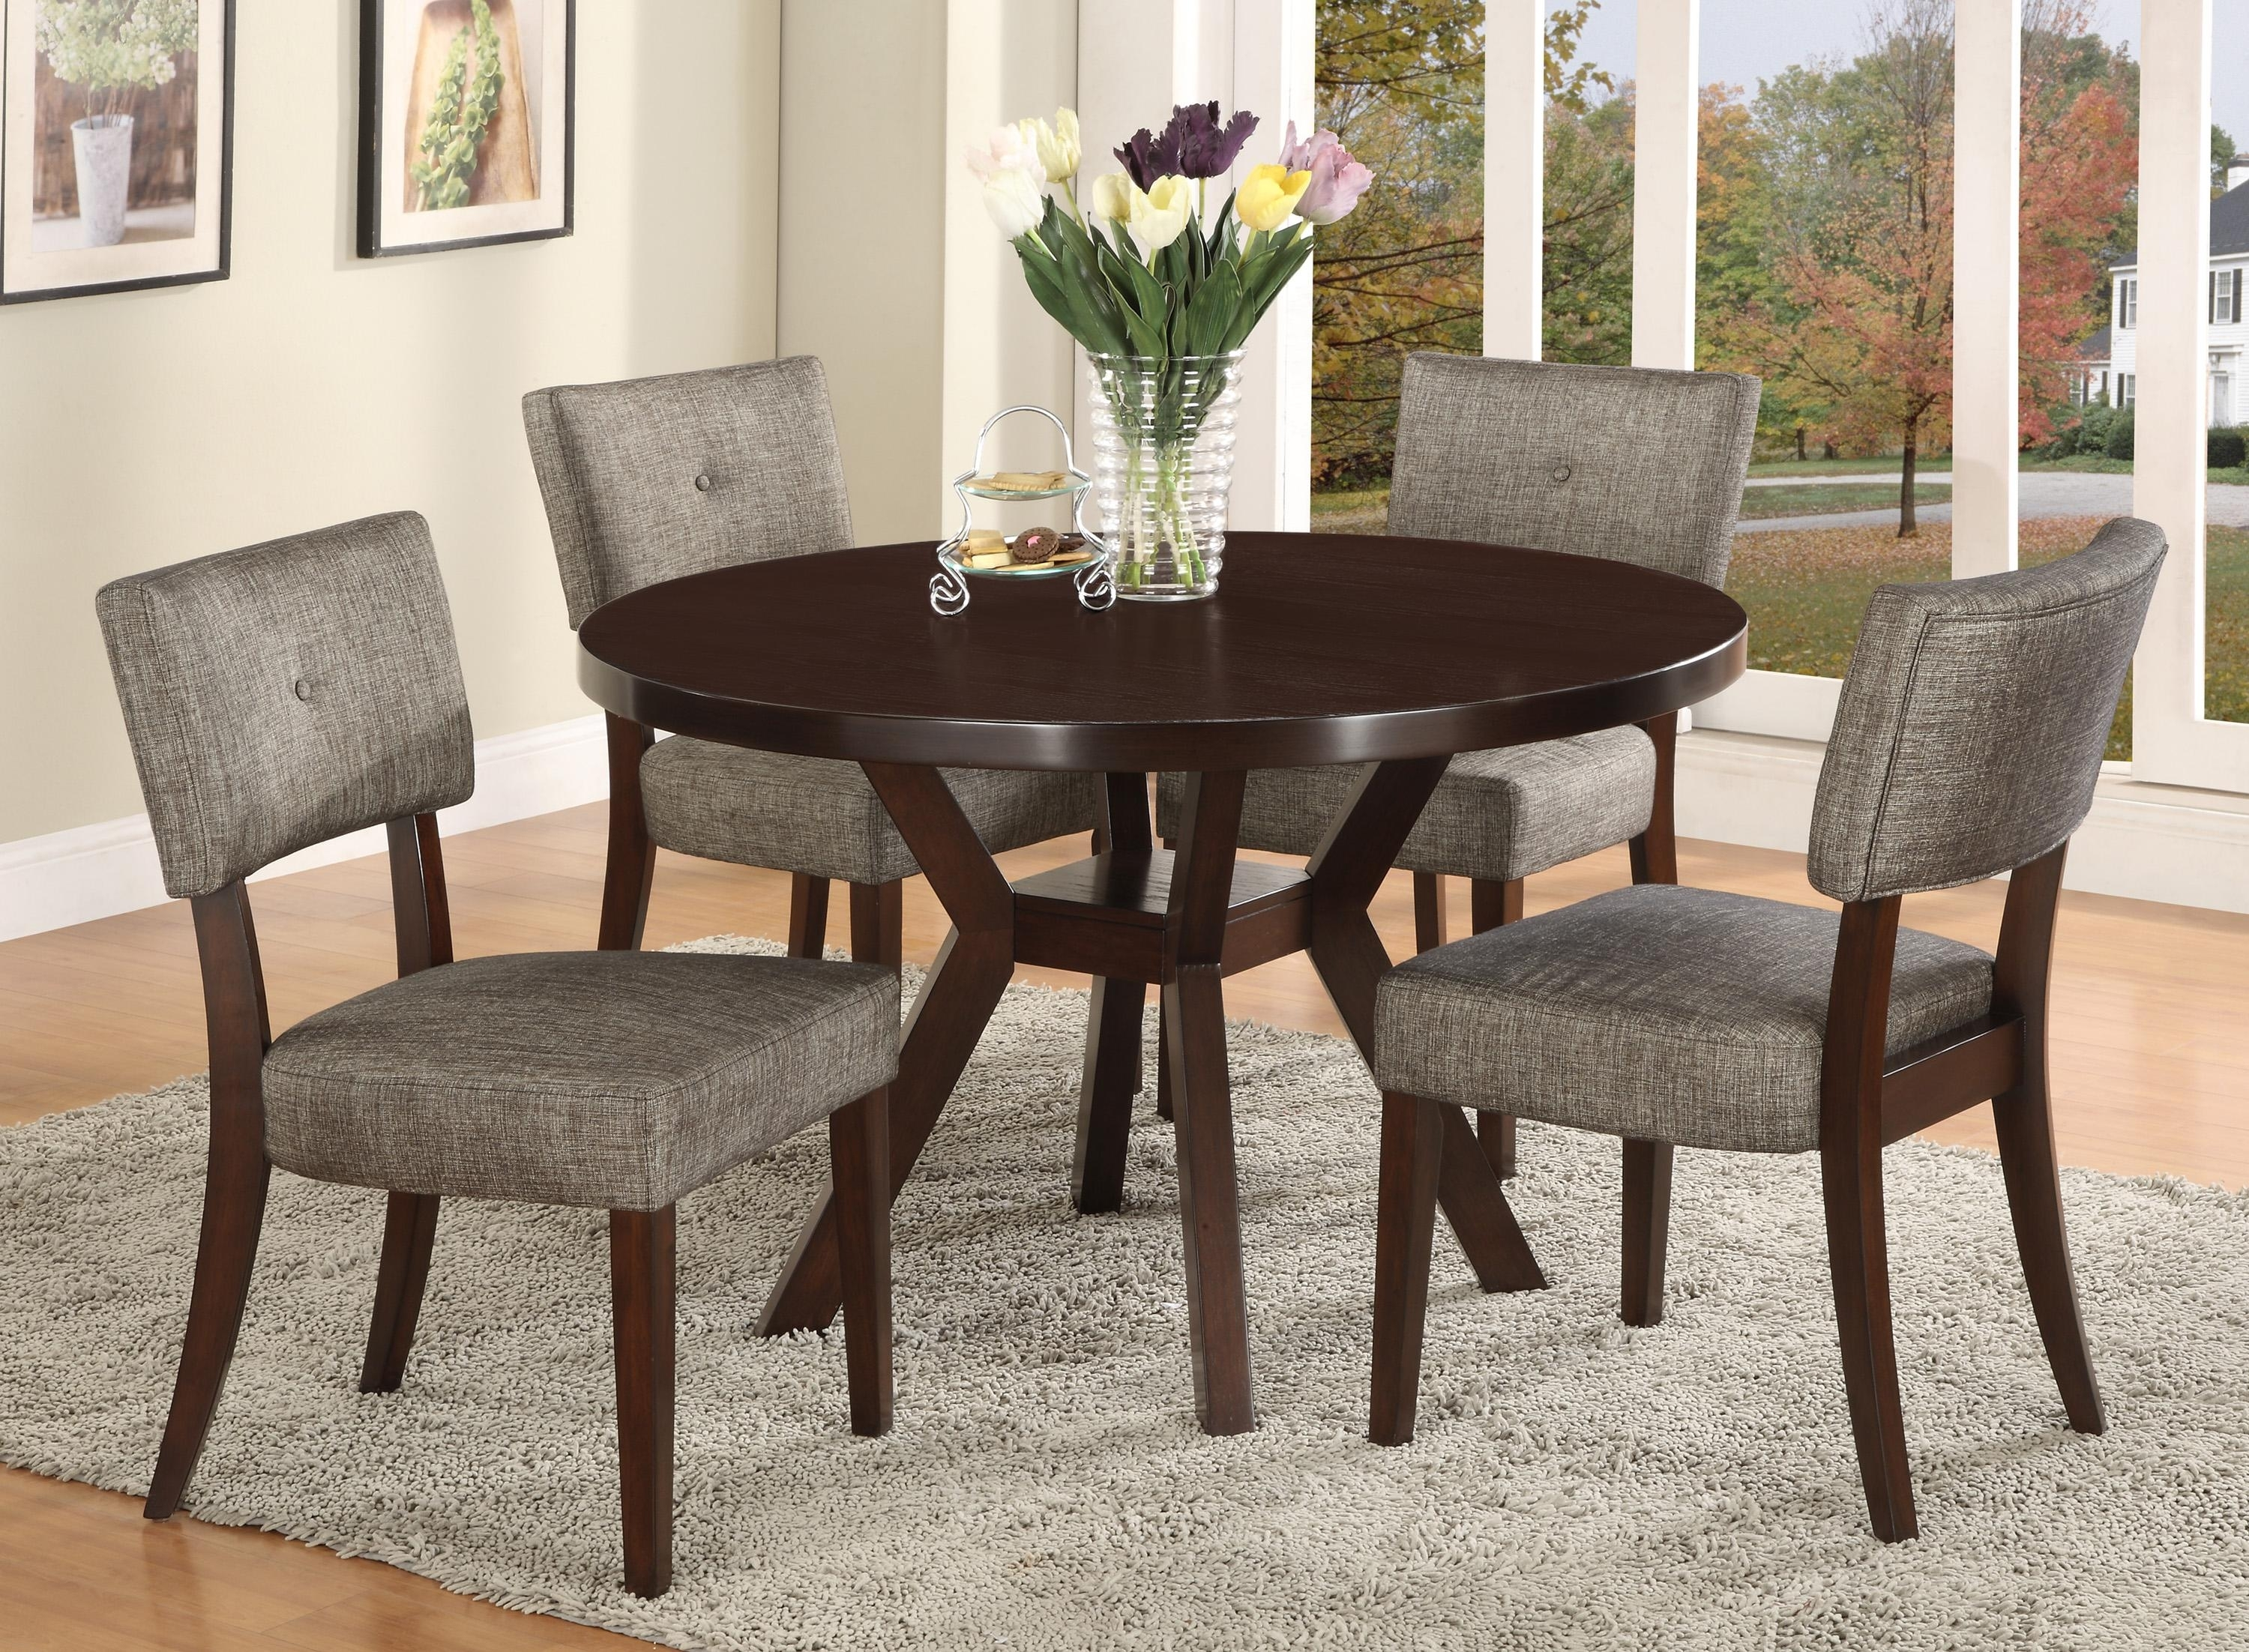 Dining Table To Seat 20 20 43 Valencia 5 Piece Round Dining Sets With Uph Seat Side